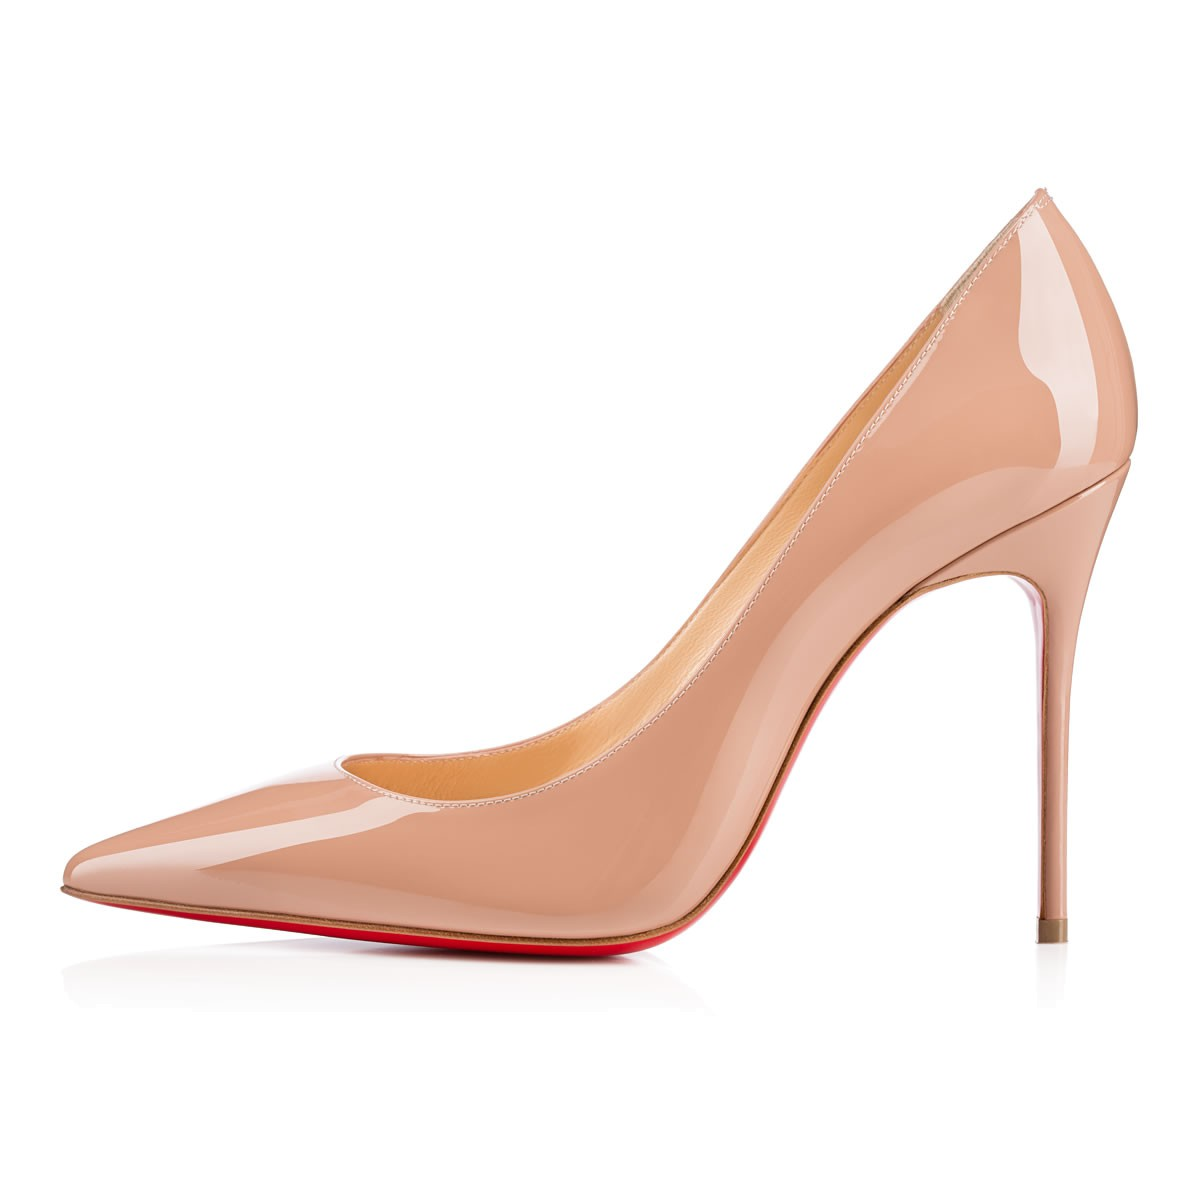 21fb56dee87 Kate 100 Nude 6248 Patent - Women Shoes - Christian Louboutin